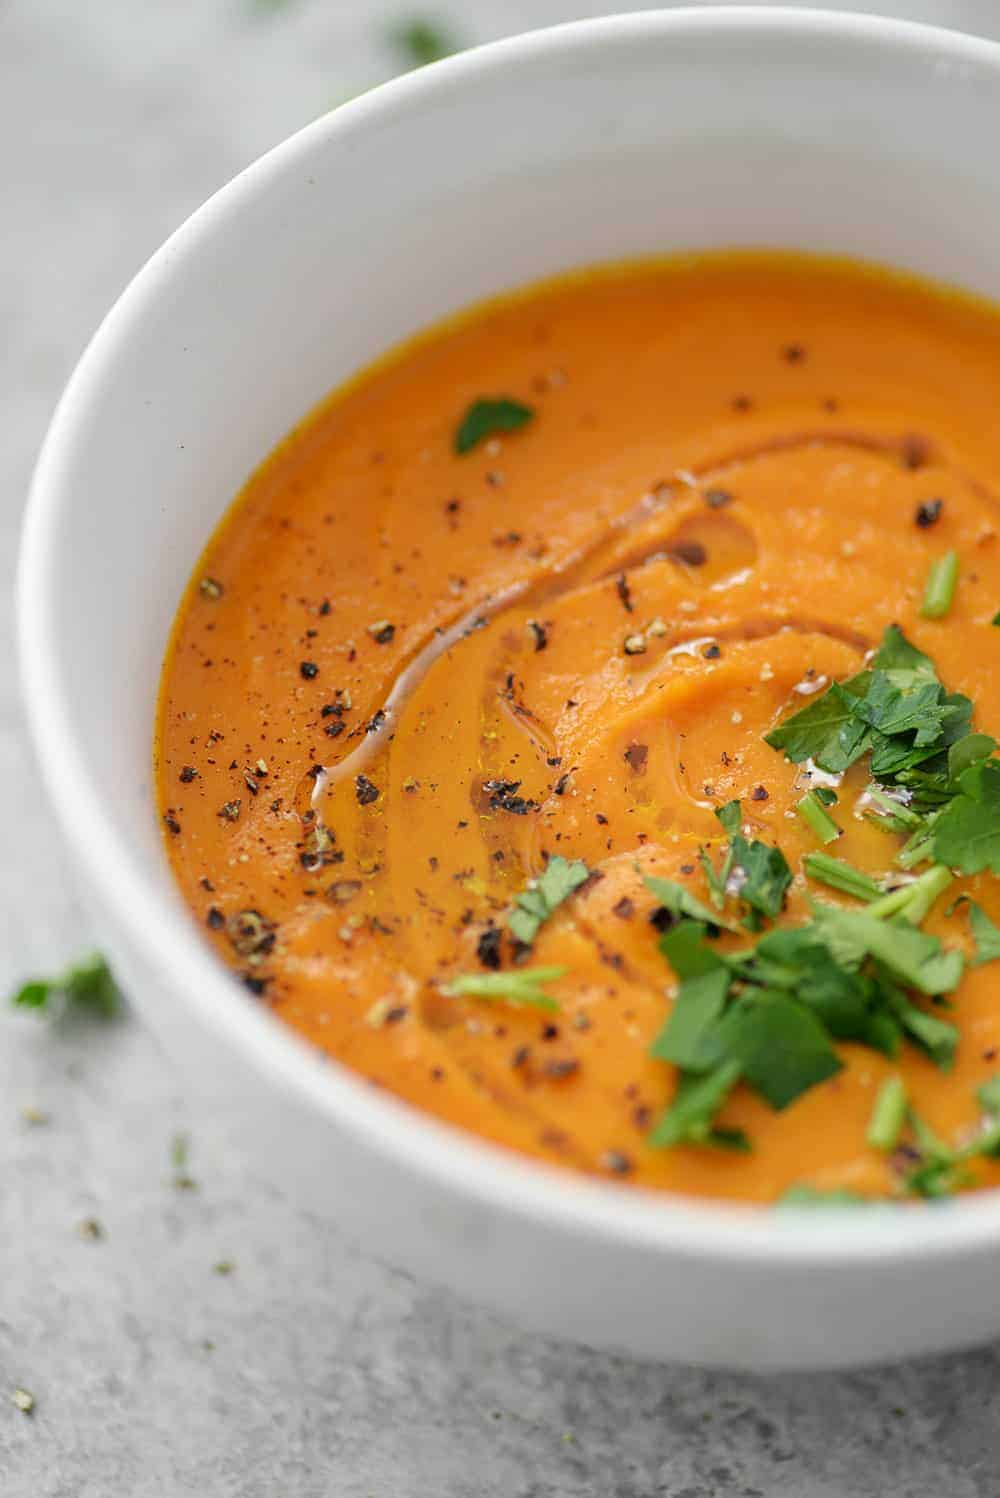 close up shot of vegan and gluten-free immune boosting carrot ginger turmeric soup